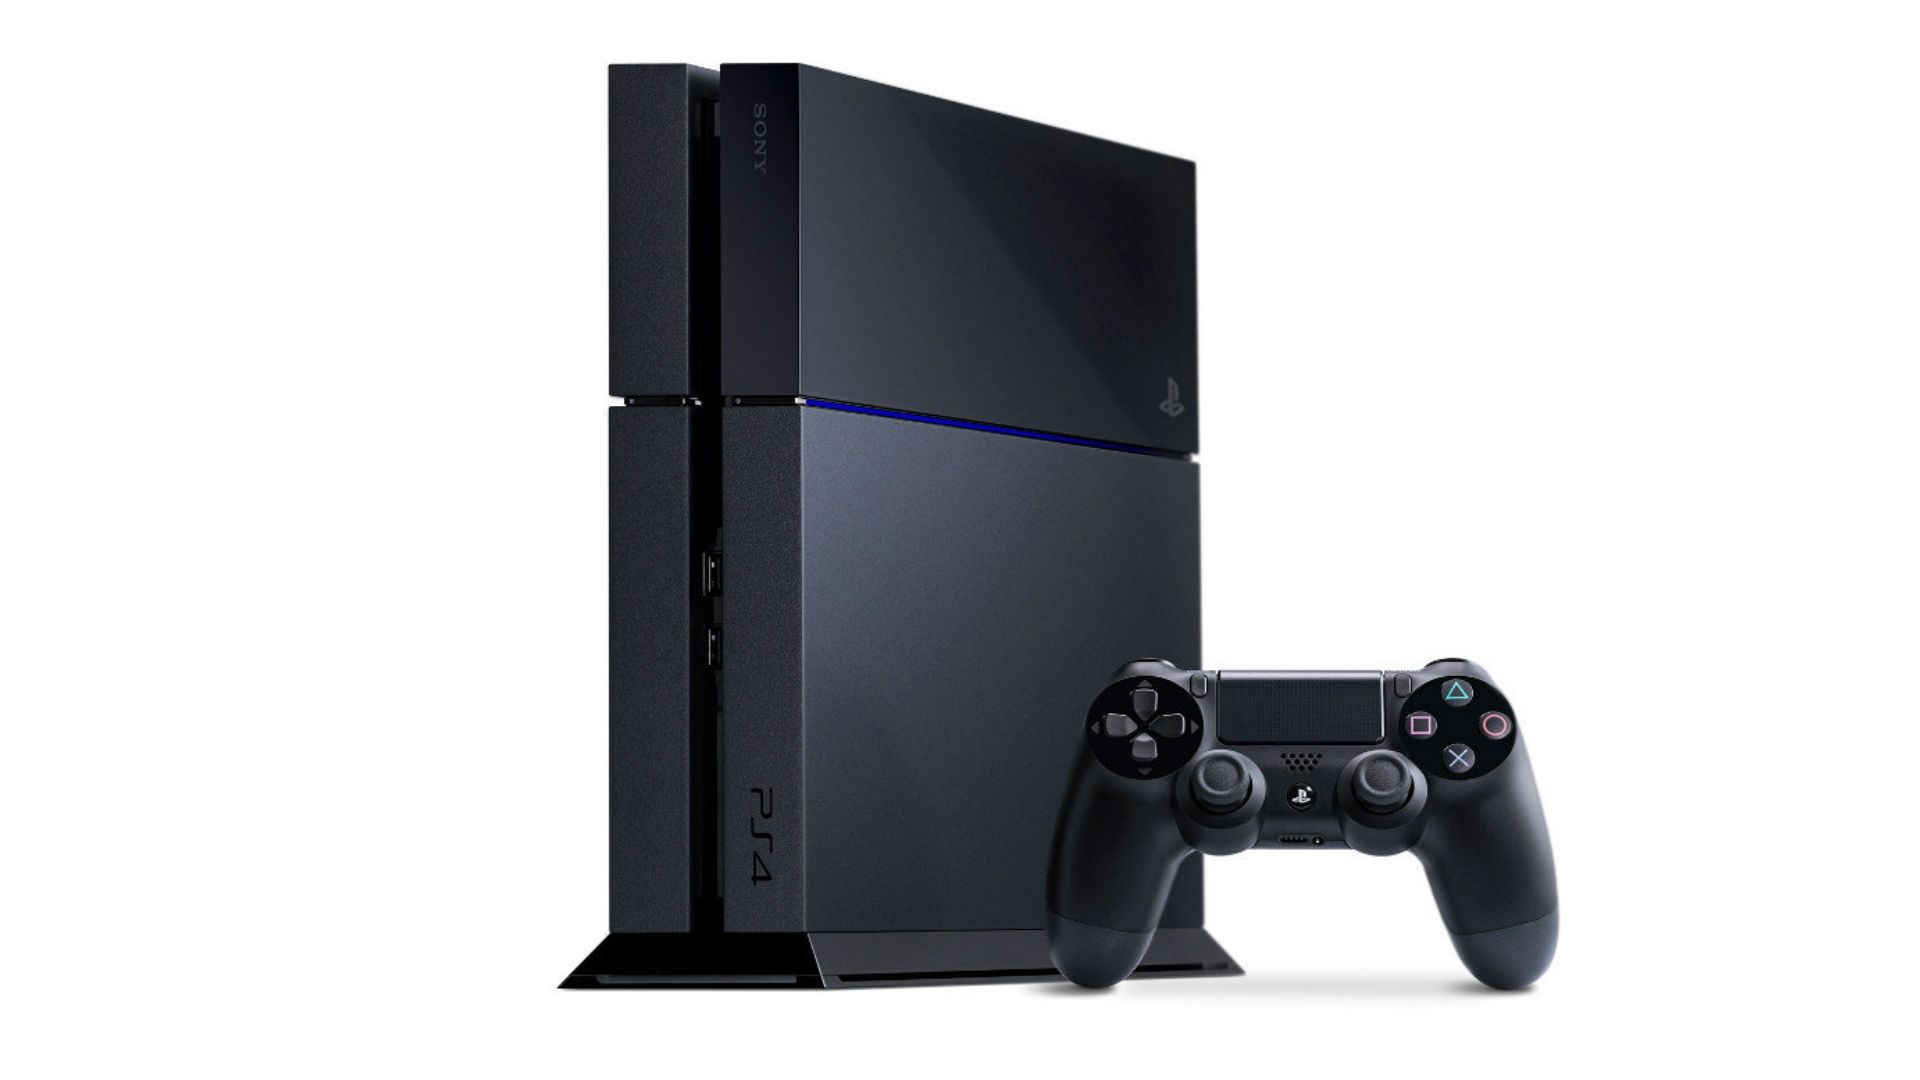 Playstation 4 Christmas Deals 2020 The best PS4 deals, bundles, and prices in October 2020